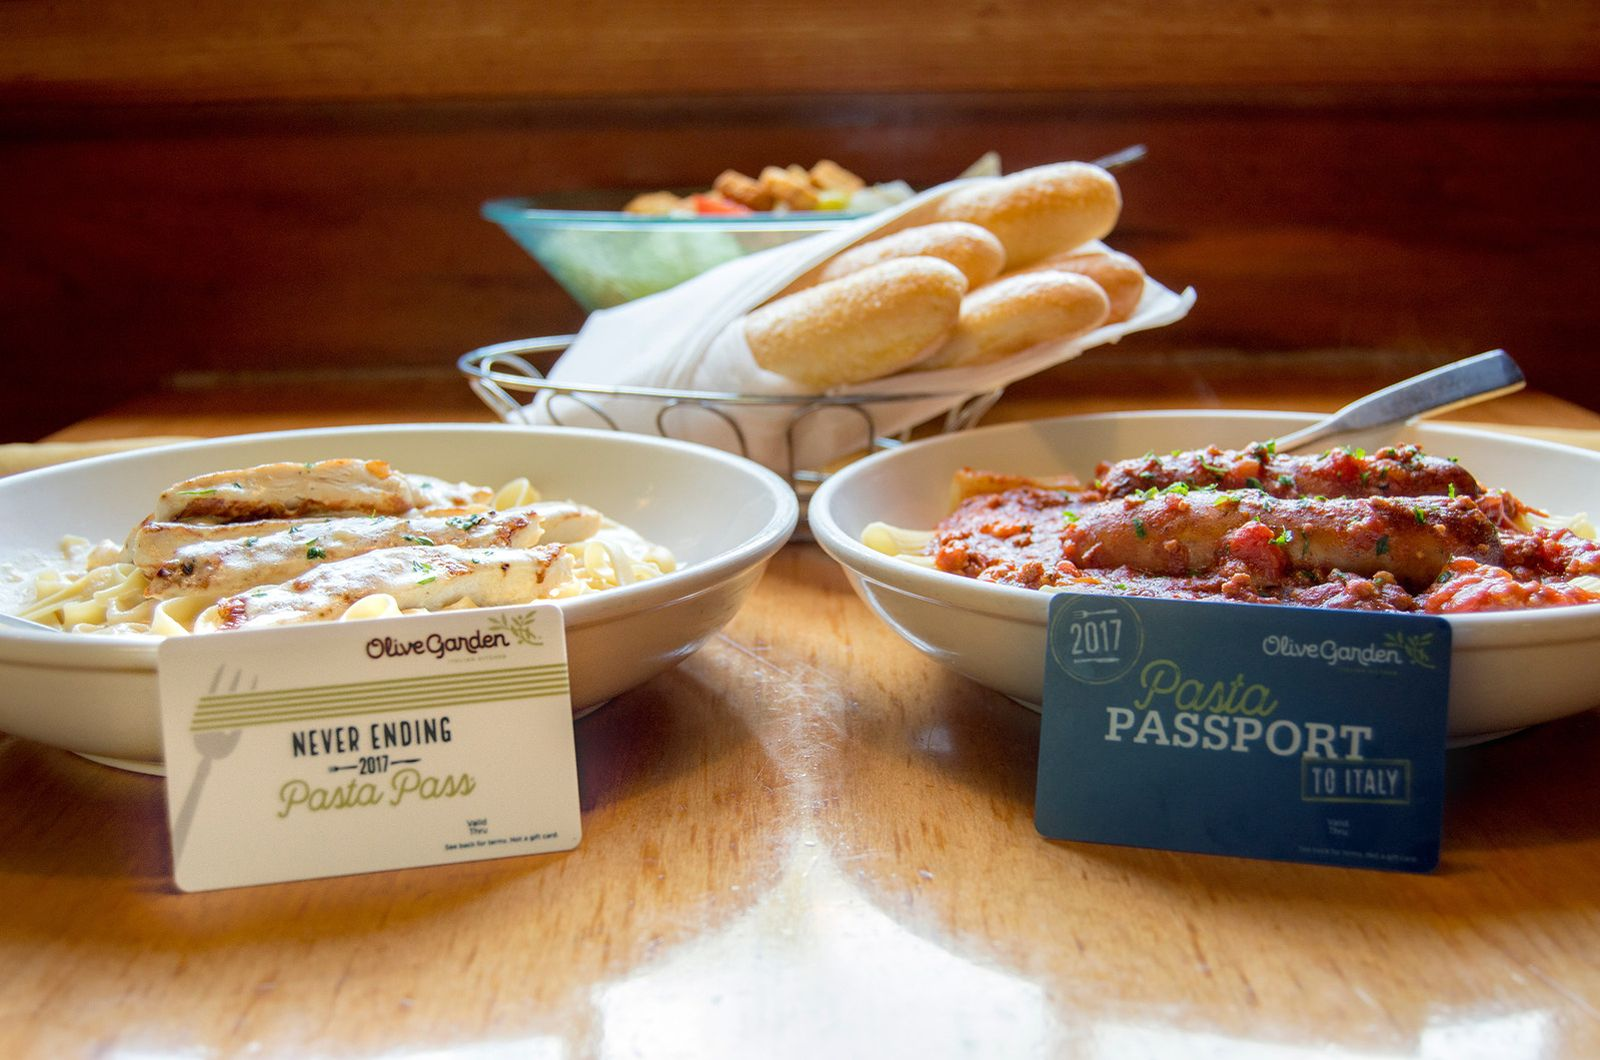 Olive Garden Introduces $200 'Pasta Passport to Italy' to Celebrate Return of 'Never Ending Pasta Pass'